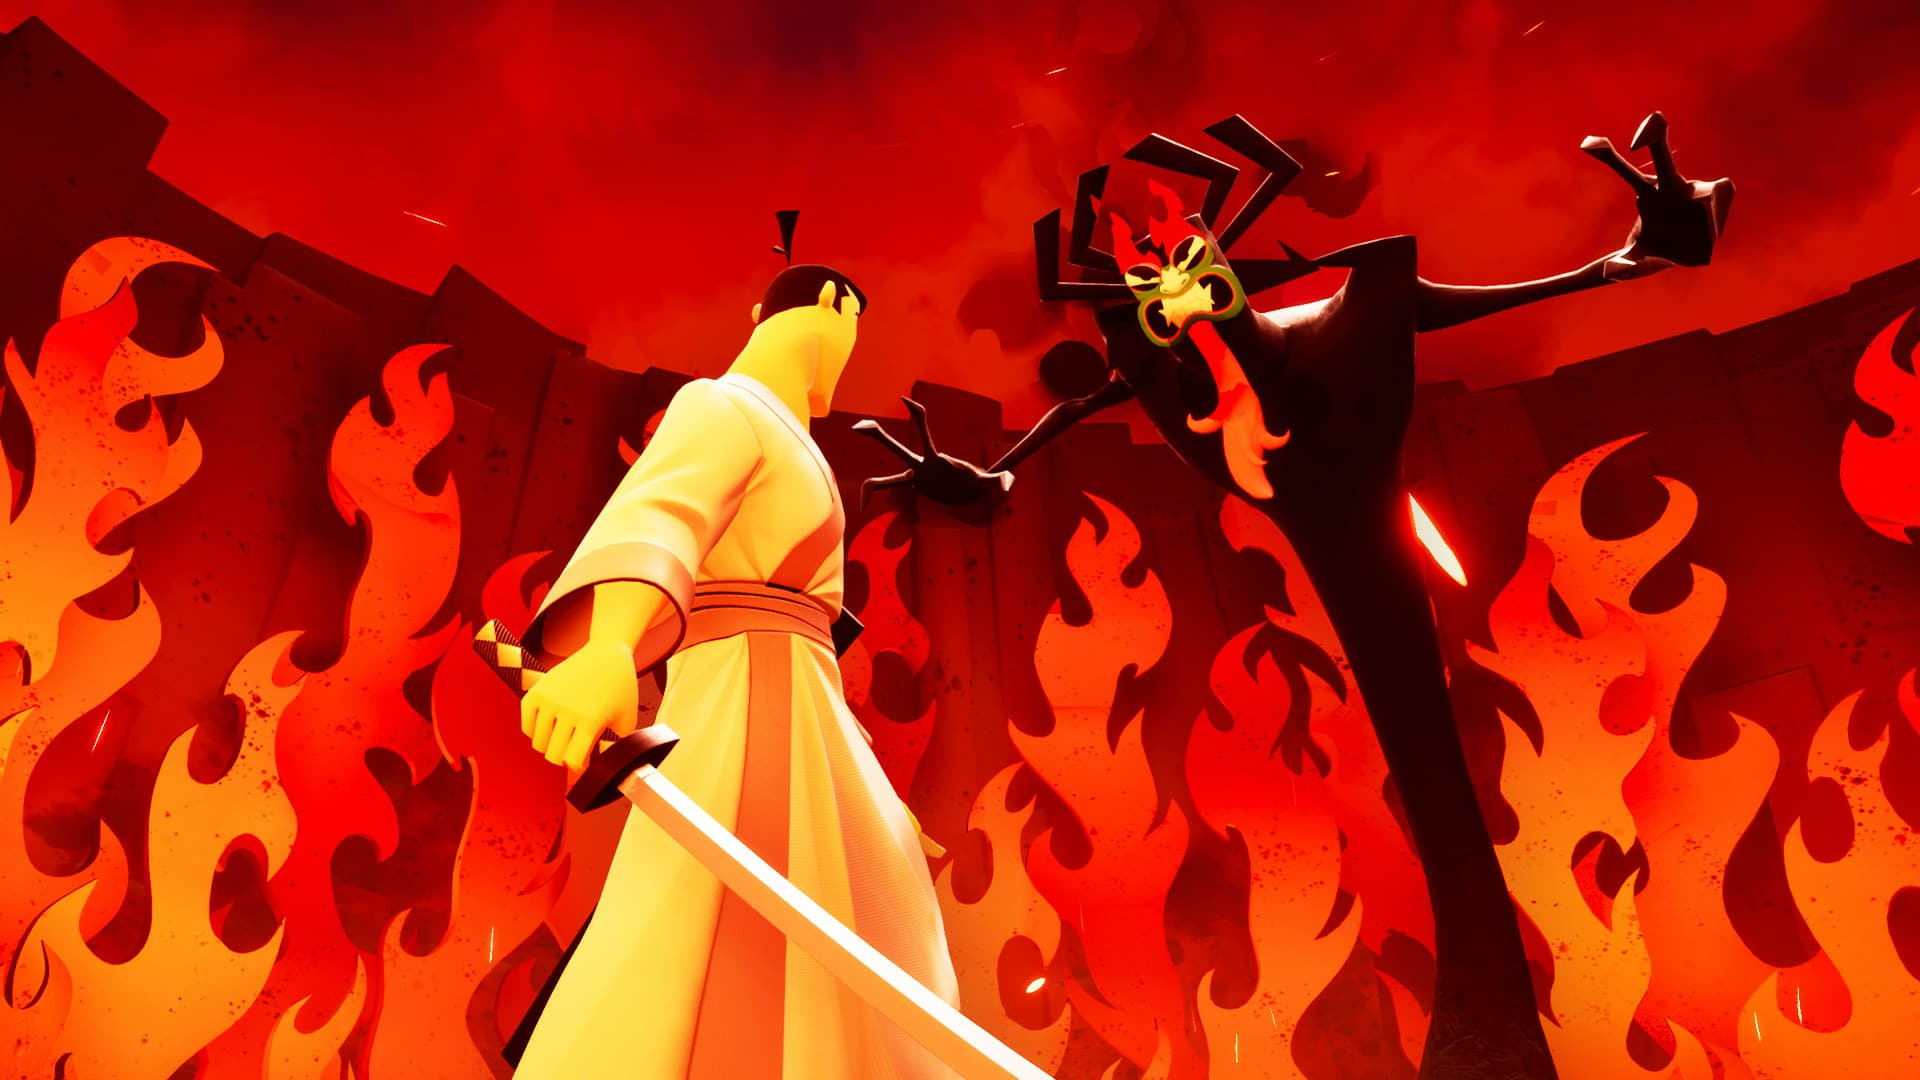 Samurai Jack: Battle Through Time is coming soon to Apple Arcade